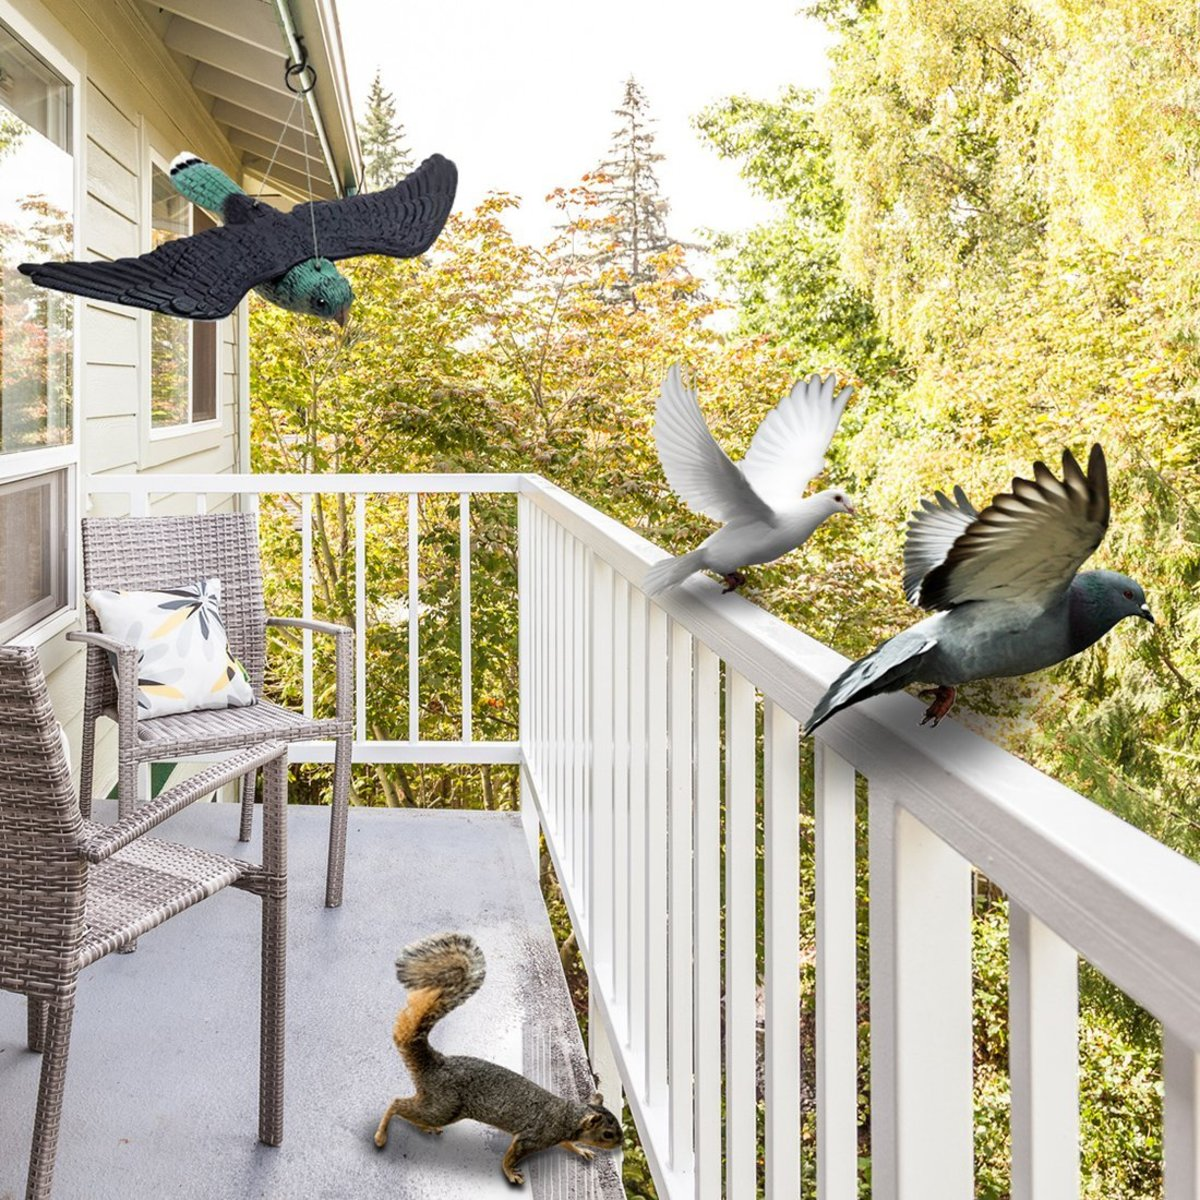 How To Keep Cats Off Patio Furniture.How To Keep Birds Off Of Patio Furniture Dengarden